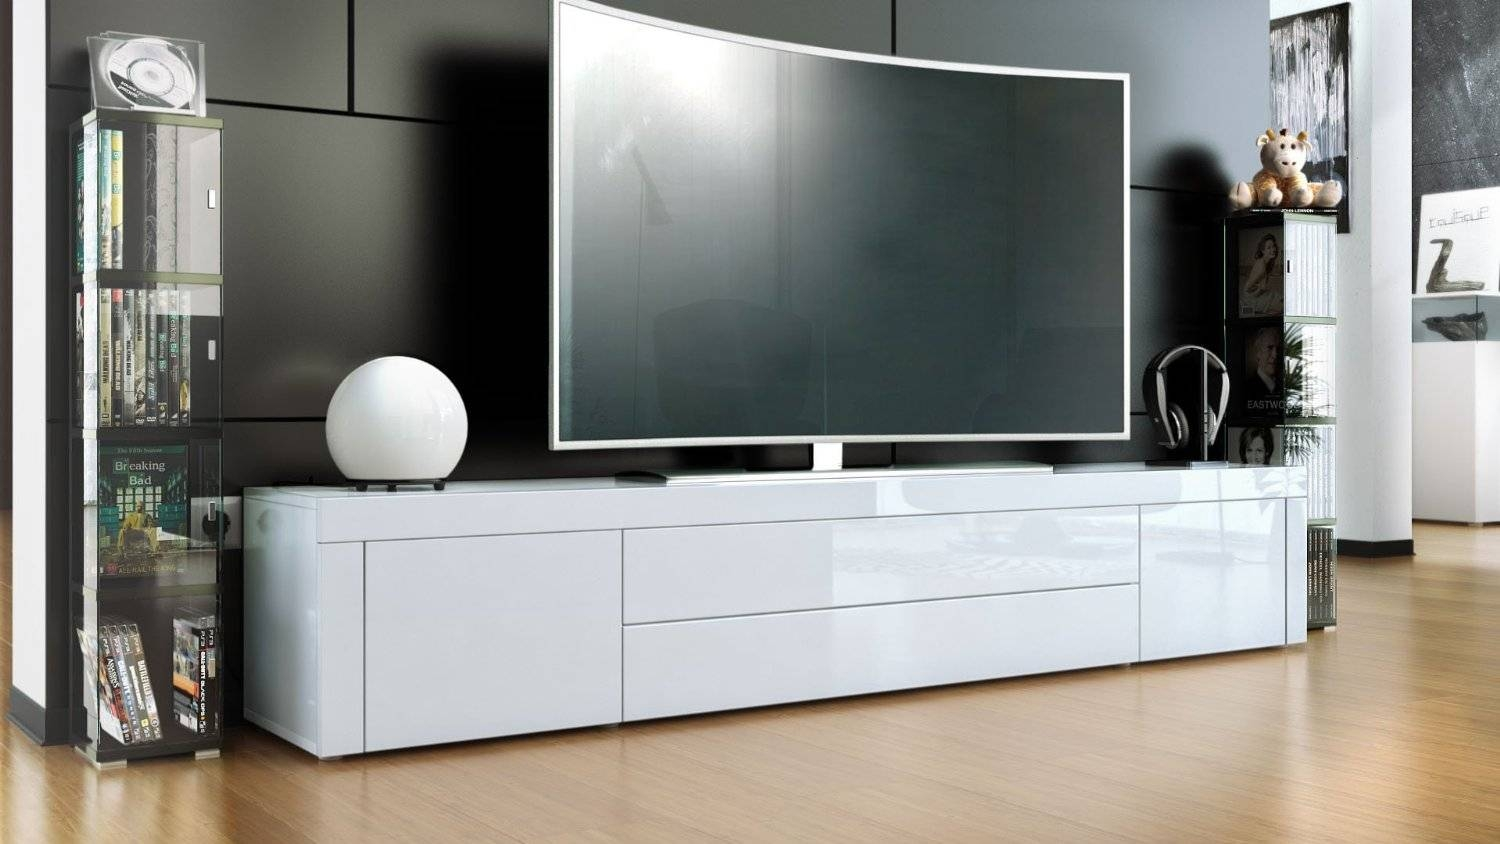 Unique High Gloss Tv Unit Sale 21 In Home Decoration Ideas With throughout High Gloss White Tv Cabinets (Image 15 of 15)